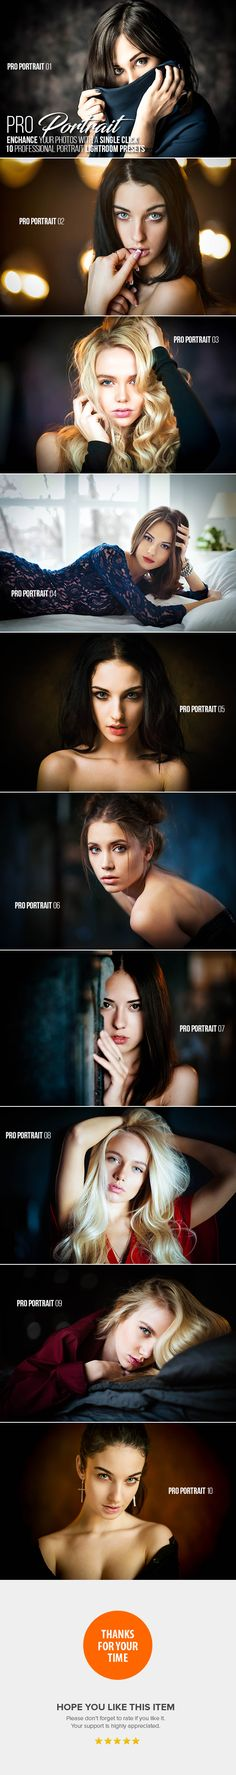 10 Pro Portrait Lightroom Presets. Download here: https://graphicriver.net/item/10-pro-portrait-lightroom-presets/17037020?ref=ksioks